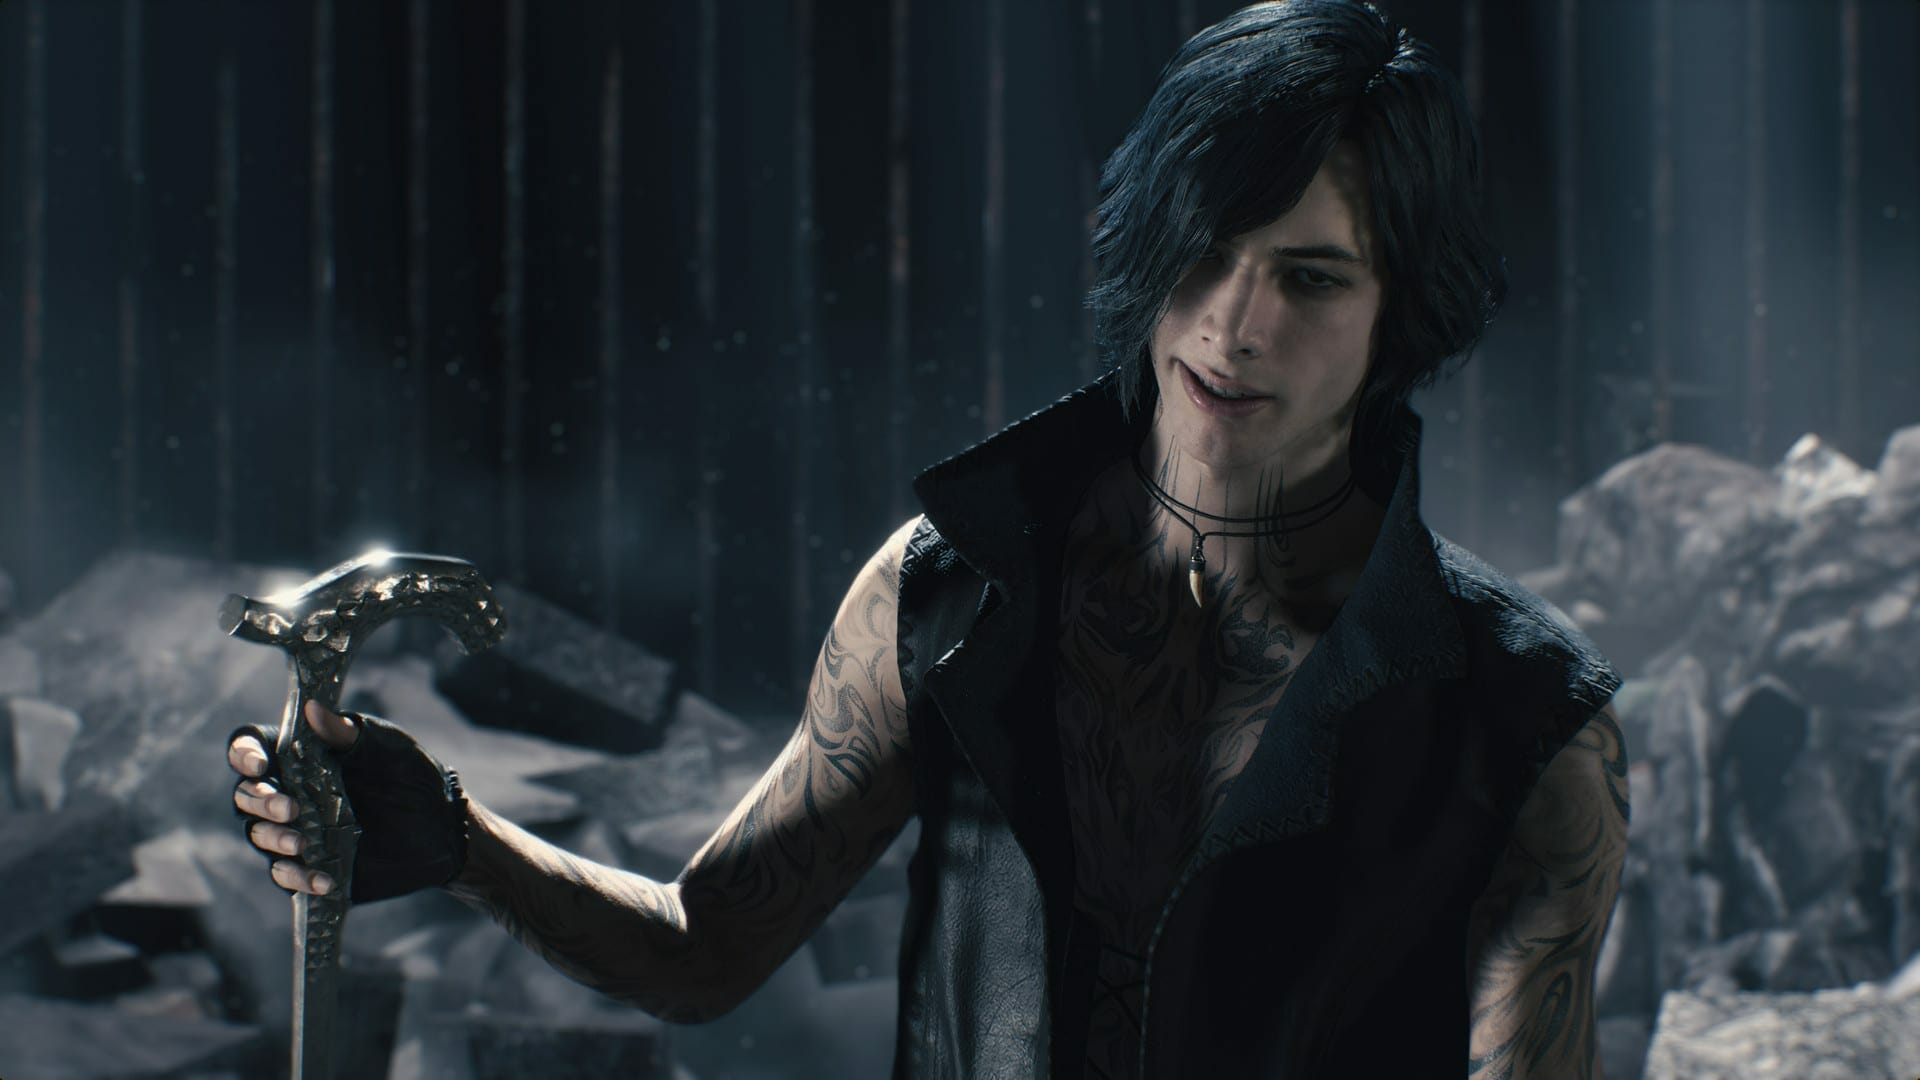 Devil May Cry 5 PCDevil May Cry 5 PC